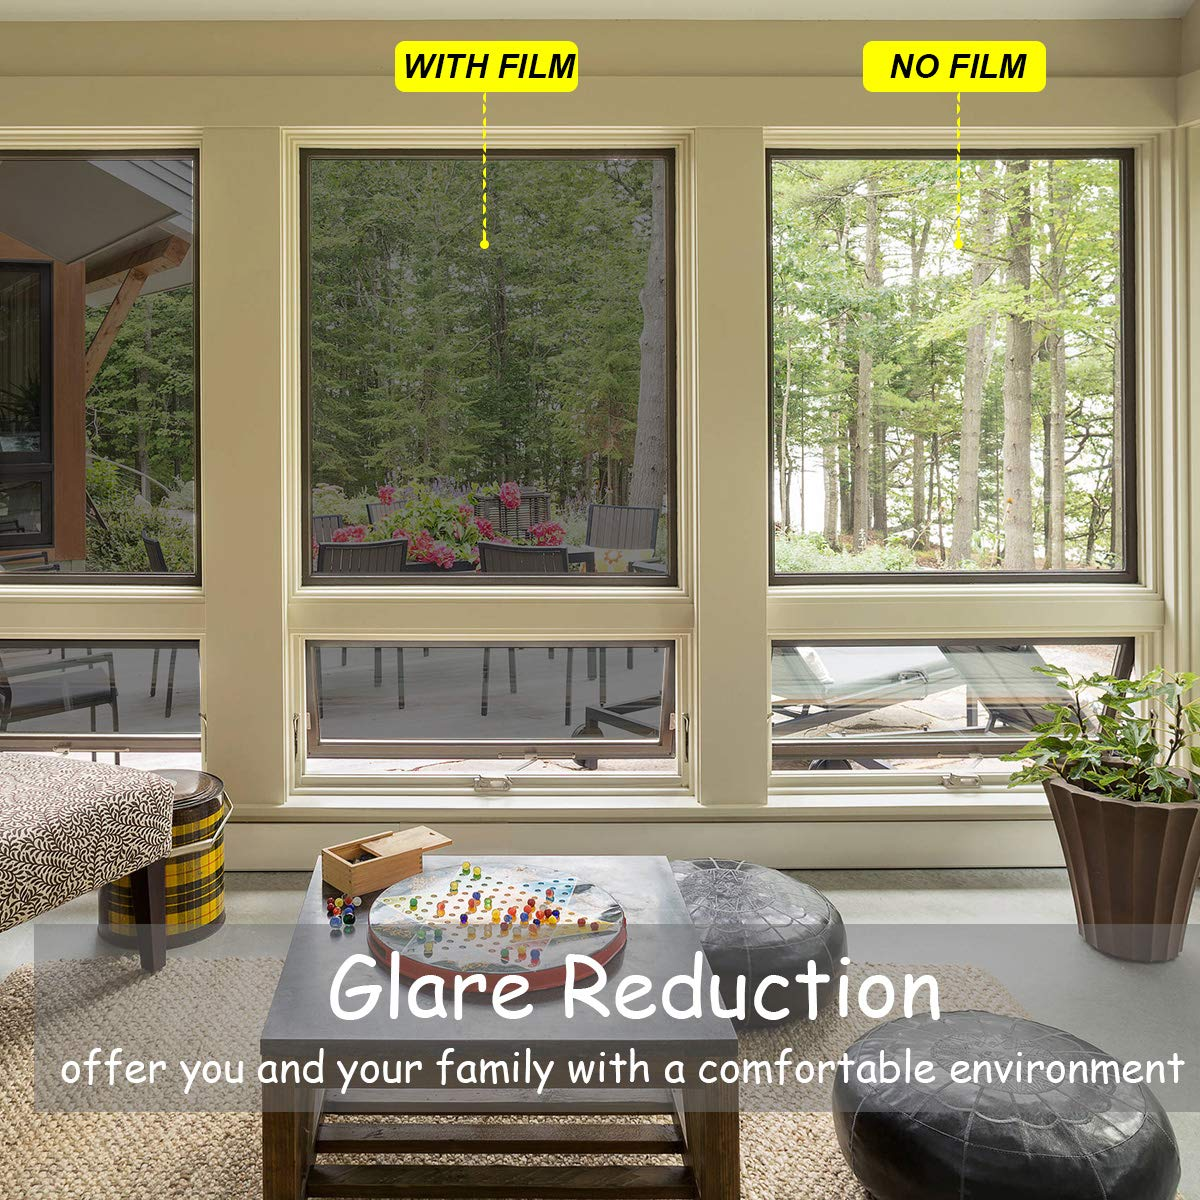 Sun Blocking Window Film, One Way Mirror Window Film Static Cling Glass Tint for Home and Office Daytime Privacy, Heat Control, UV Rejection and Glare Reduction (Black-Silver, 23.6 x 157.4 Inches) by Jahoot (Image #3)